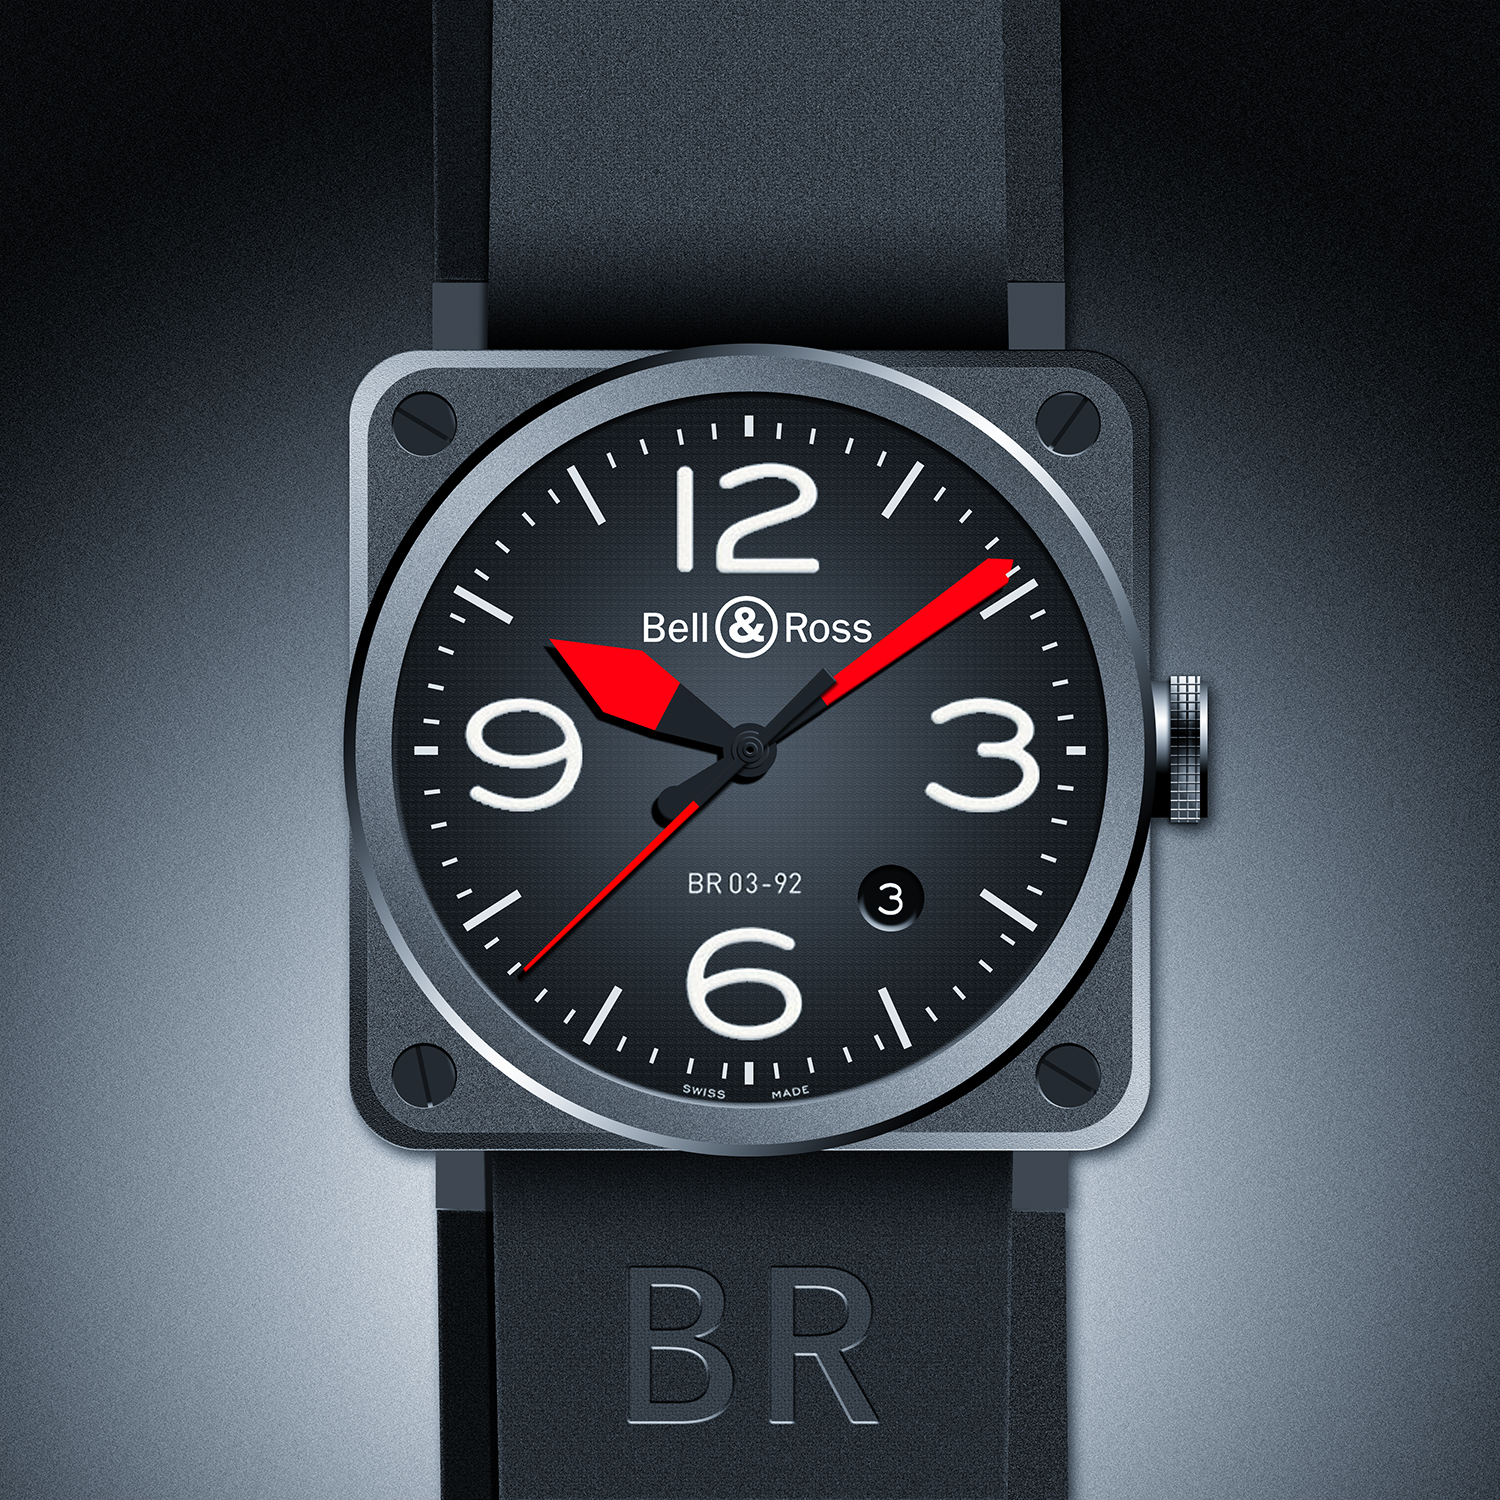 Illustration - Bell & Ross